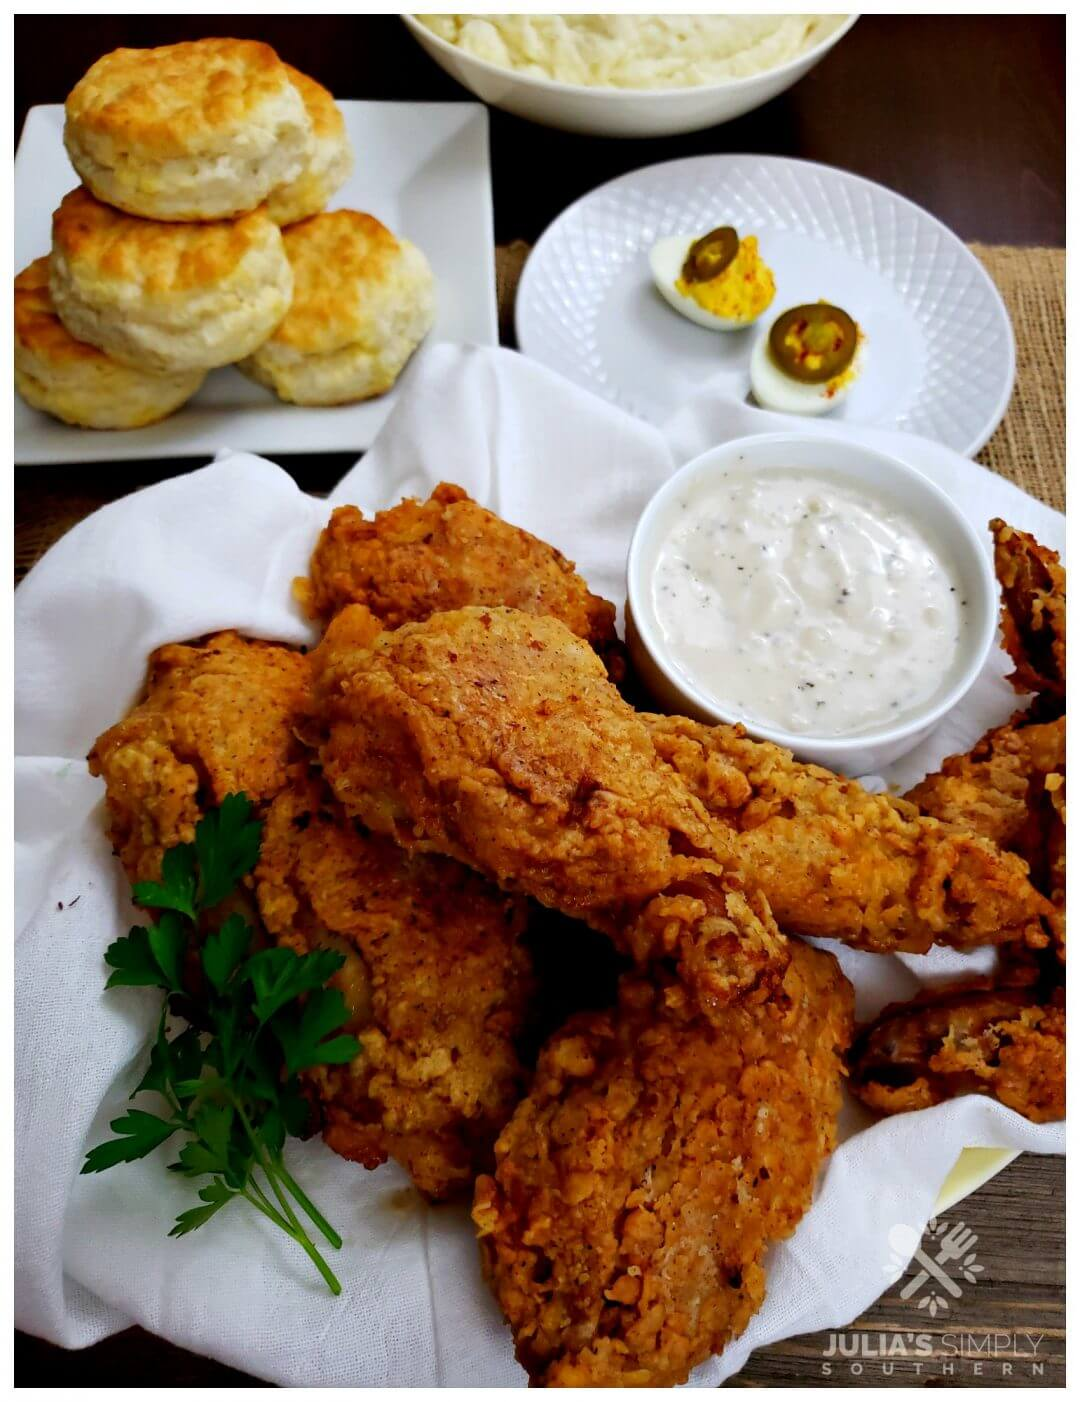 Grandmama's Southern Fried Chicken Recipe in a skillet